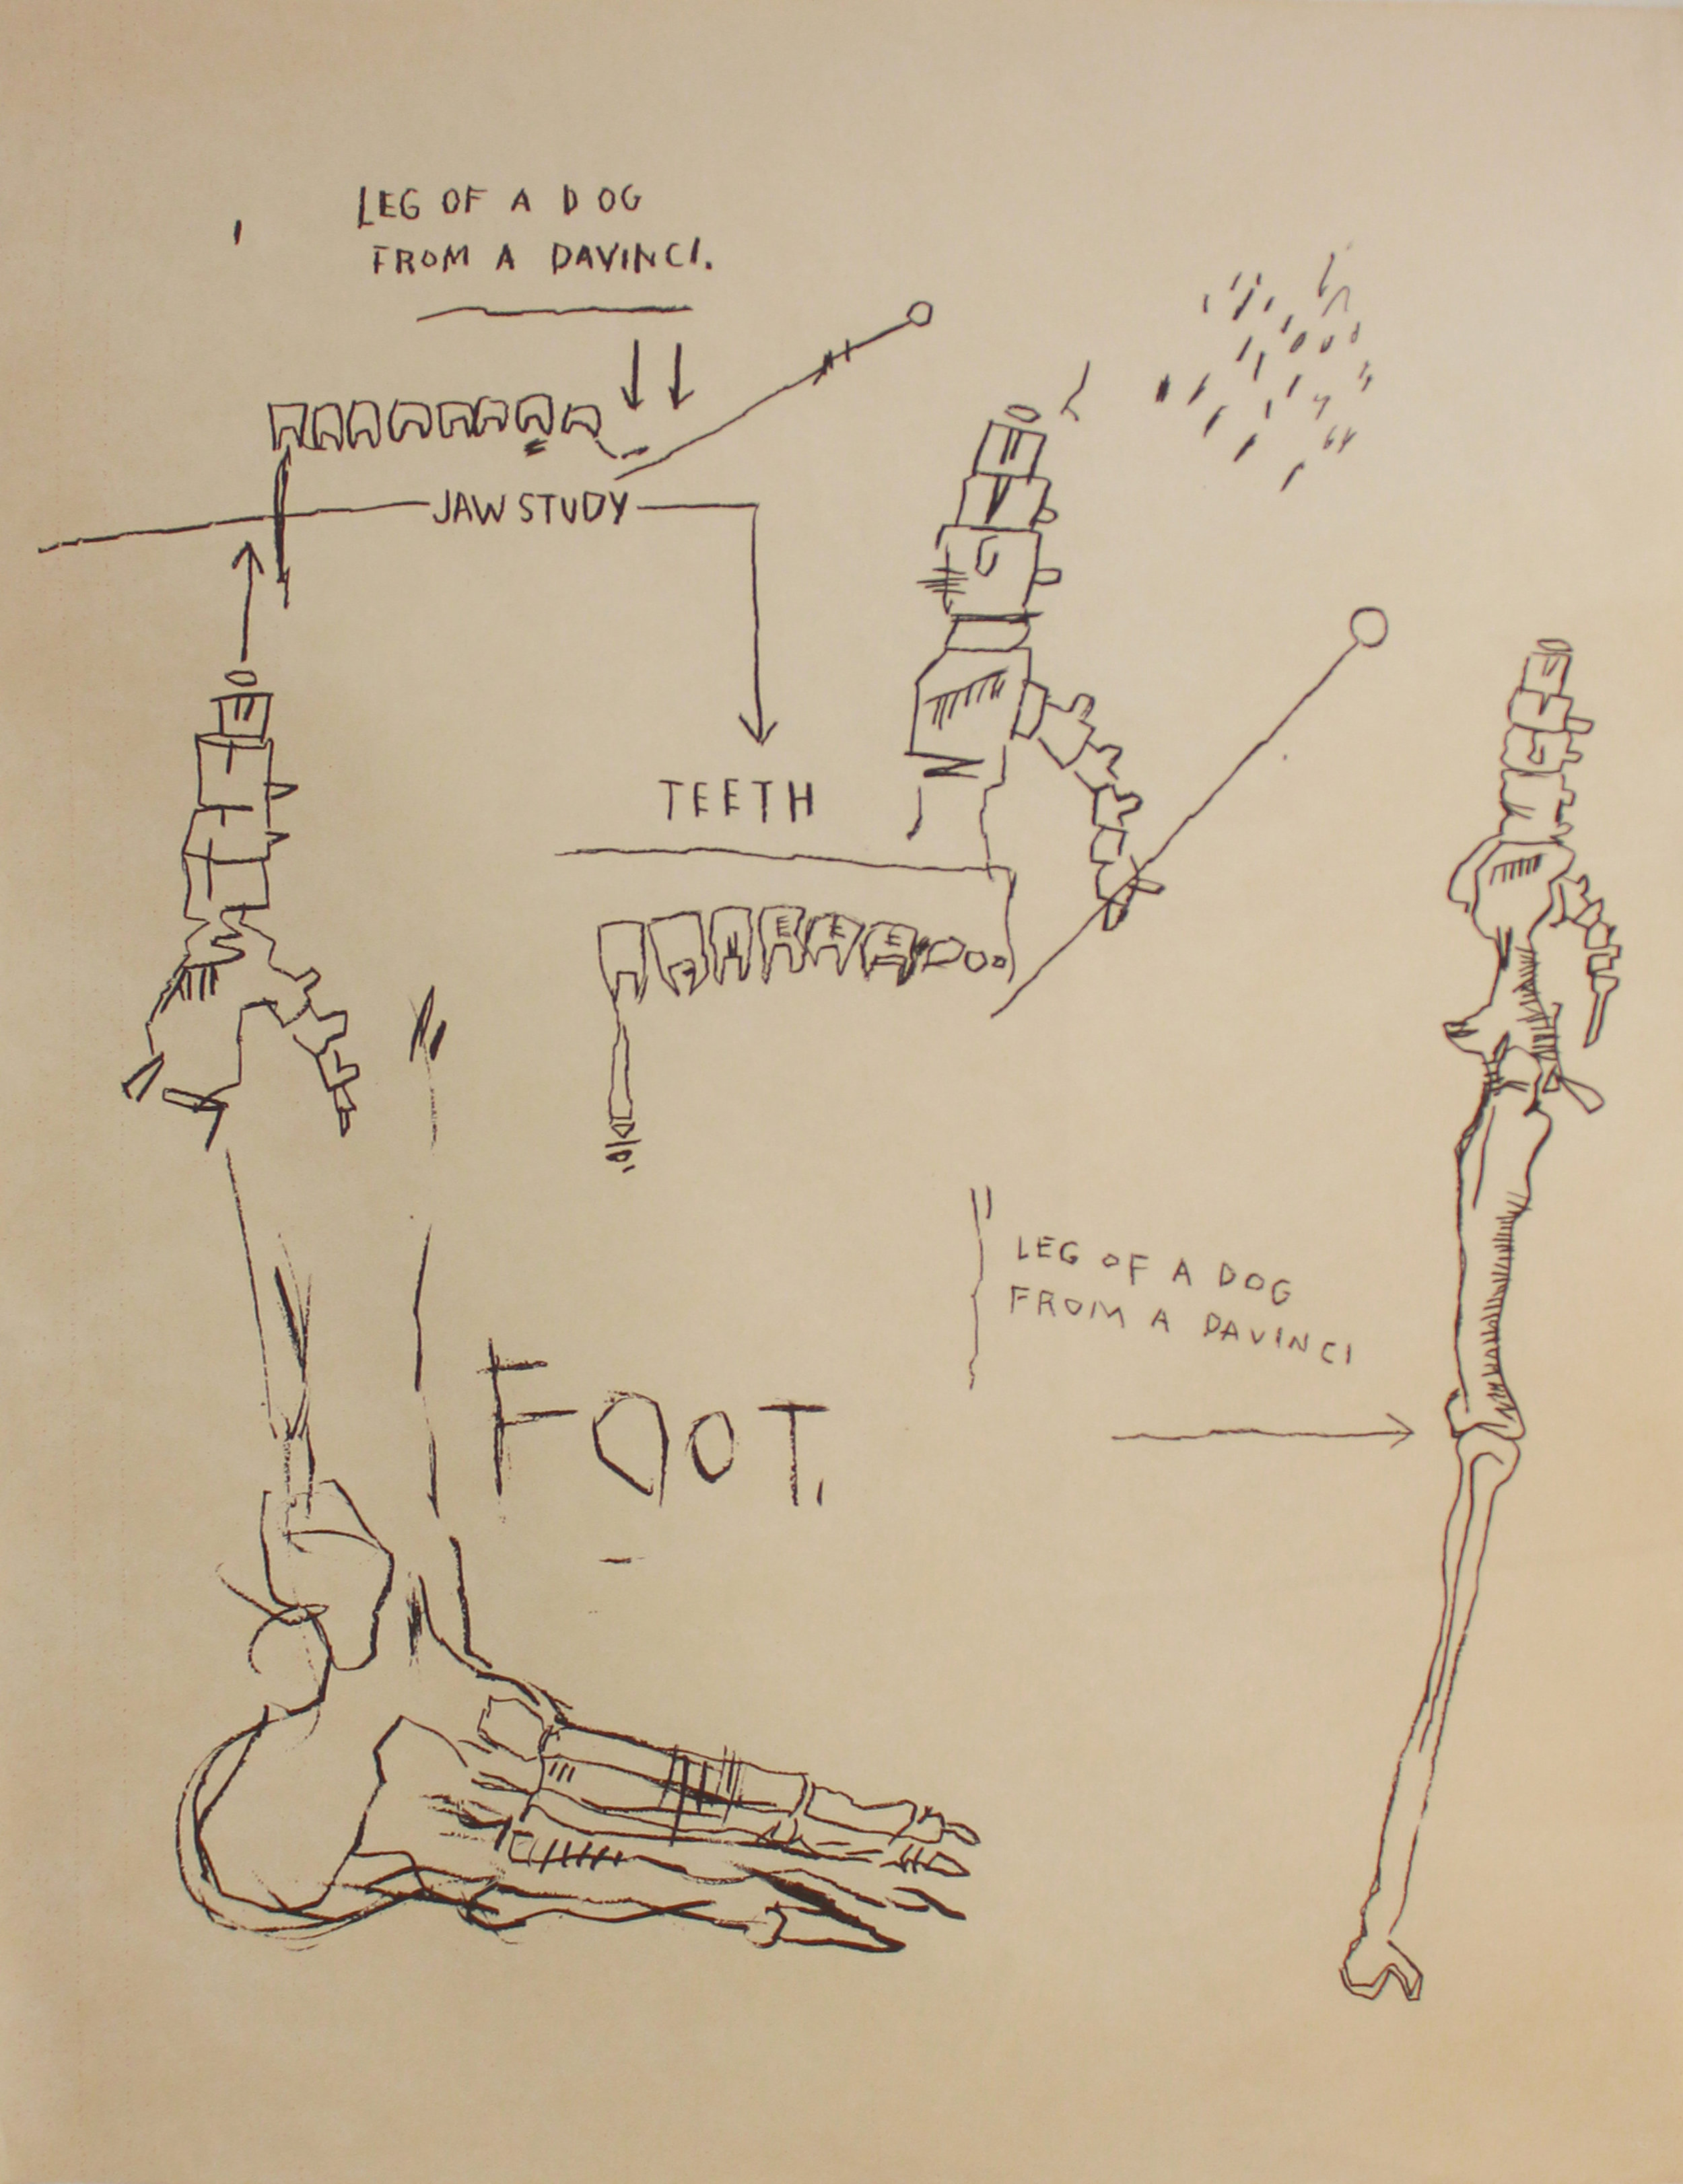 Jean-Michel Basquiat (1960-1988)   Leg of the Dog , 1983 Silkscreen on Okawara rice paper Unsigned printers proof; New City Editions, Venice, CA blindstamp lower right Sheet: 40 x 31 inches; Framed: 46.5 x 37.5 inches Estimate: $8,000/$12,000